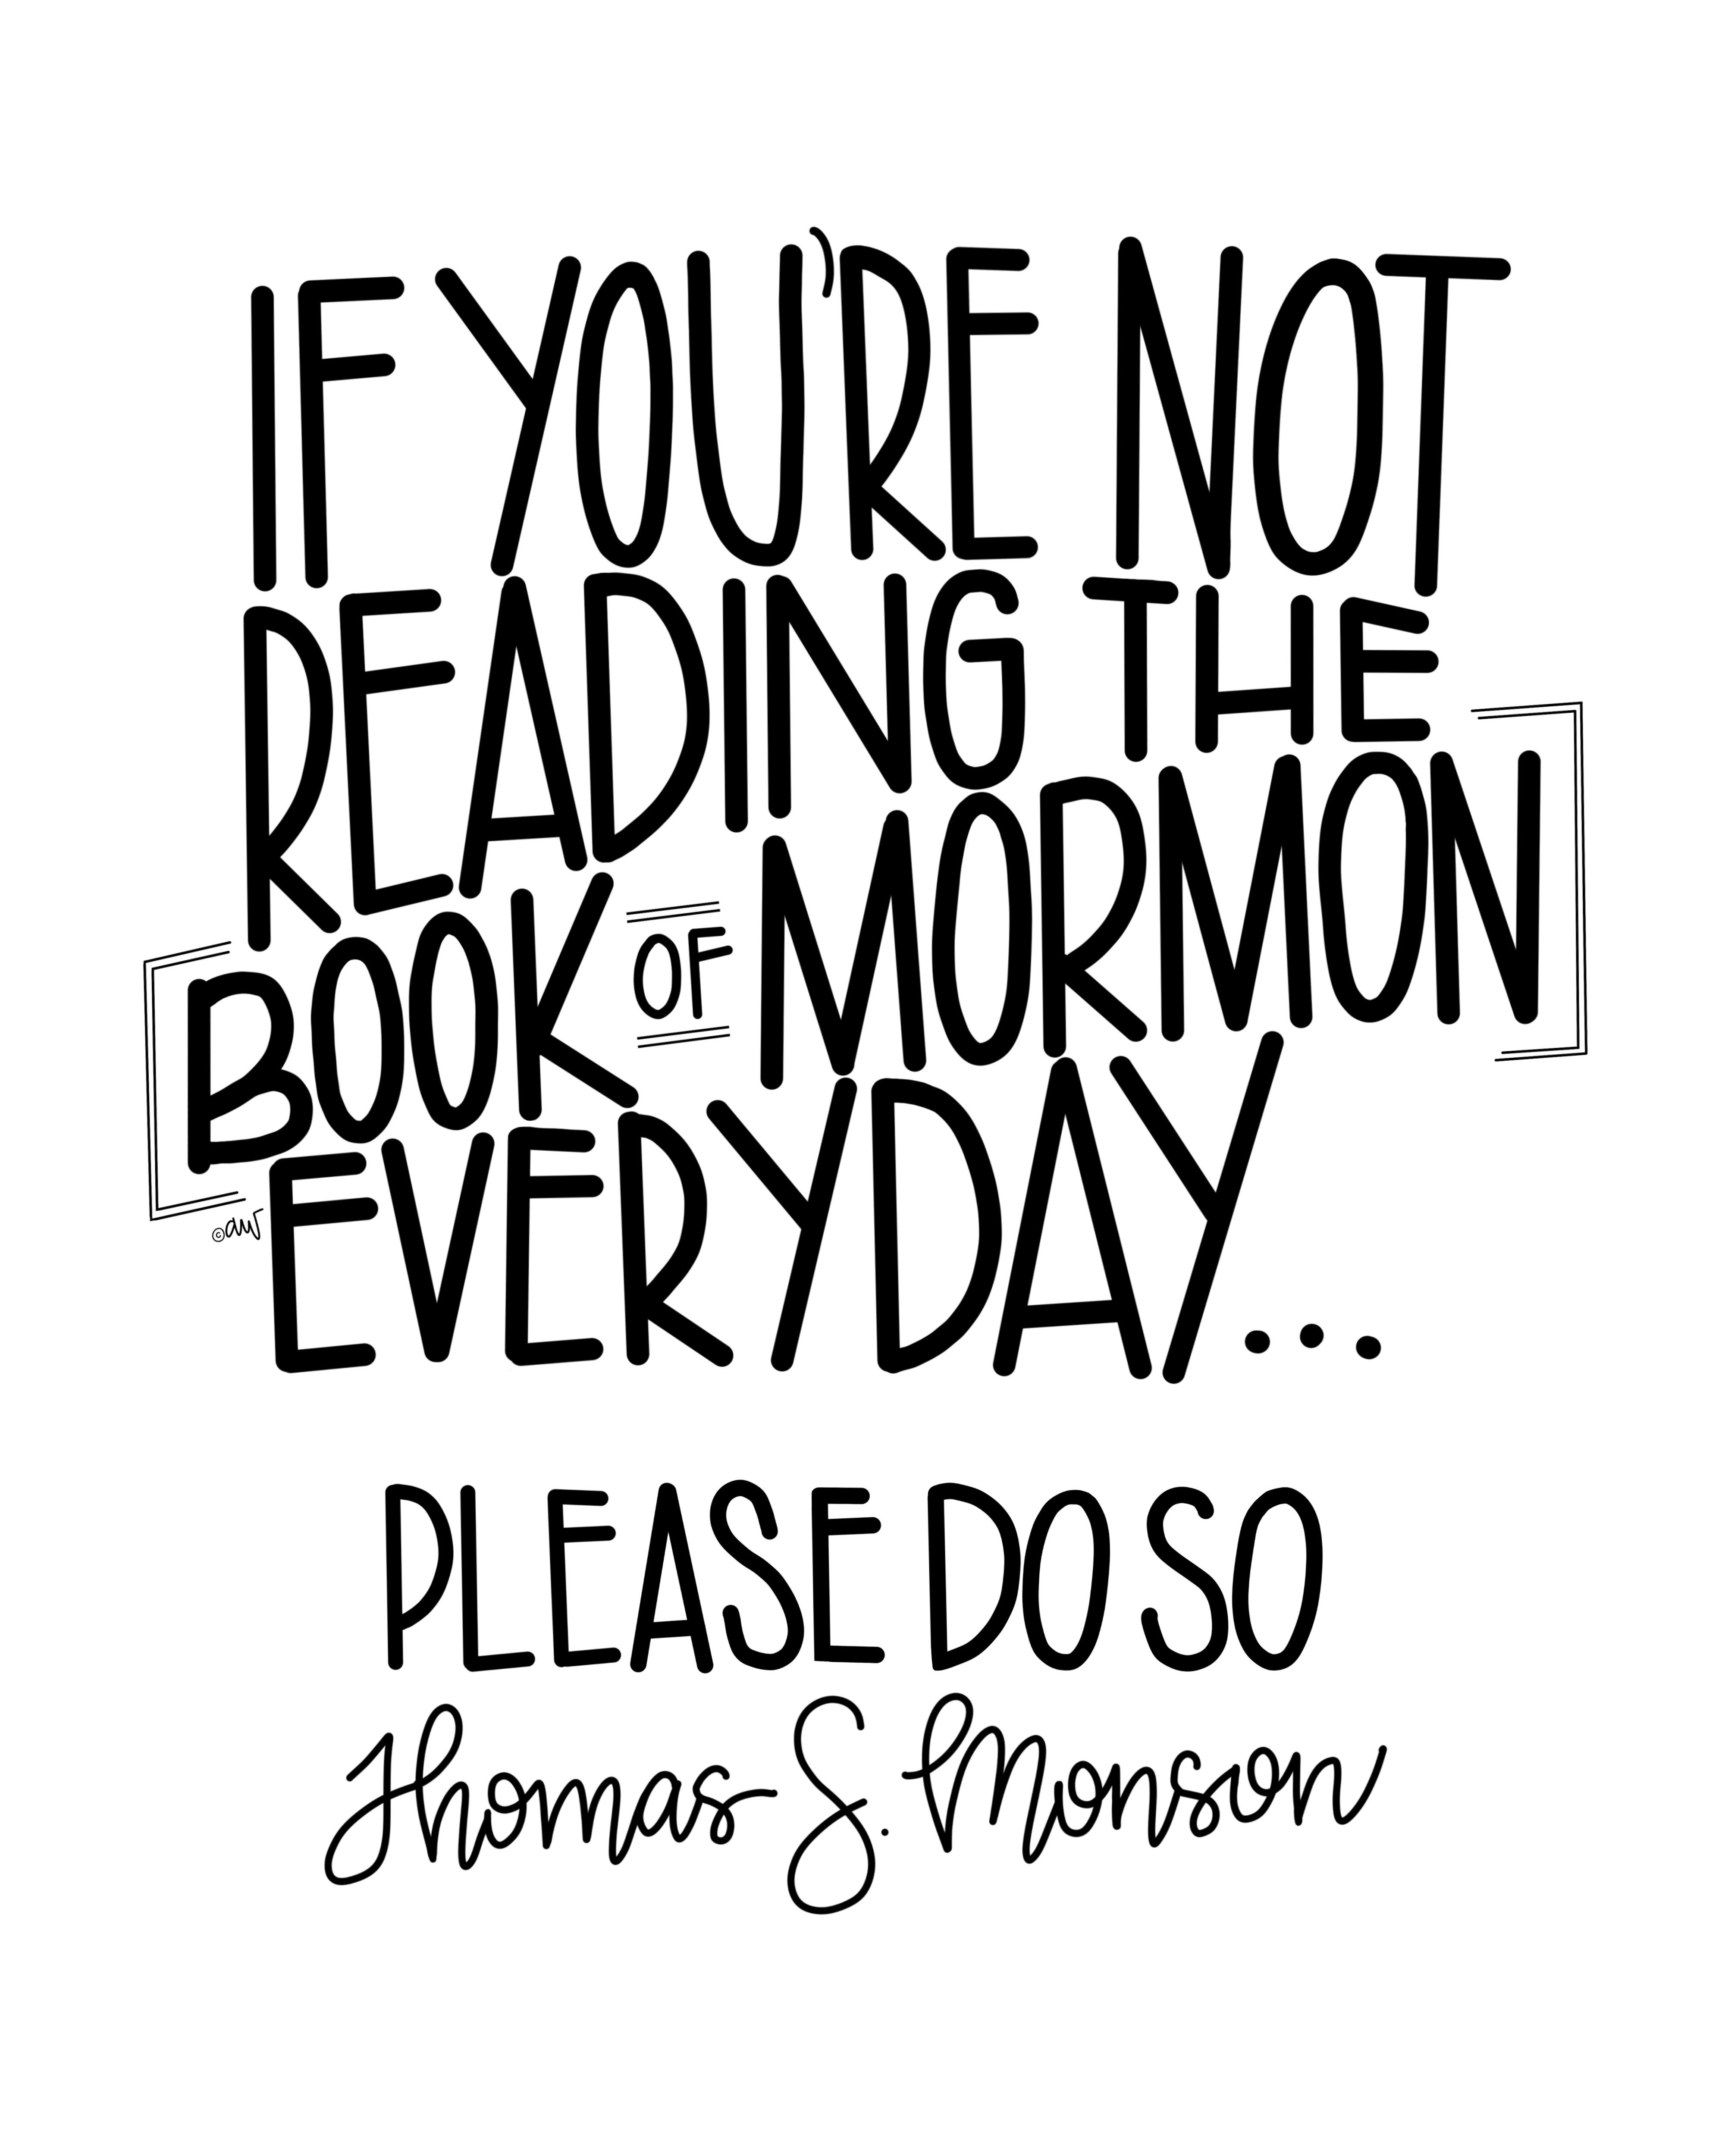 Book Of Mormon Quotes Three Reasons to Read the Book of Mormon Everyday | Words to live  Book Of Mormon Quotes